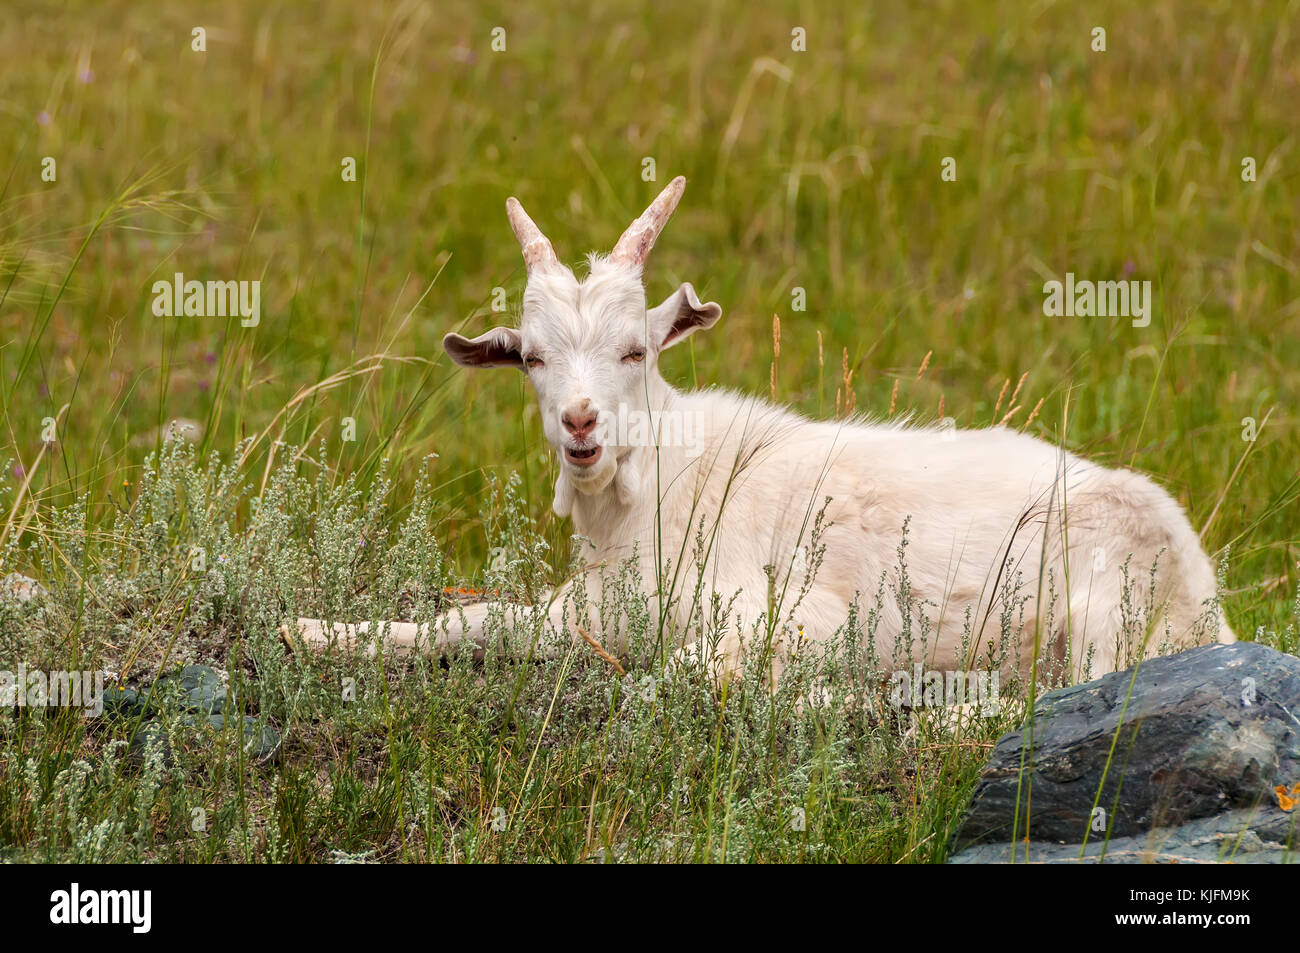 White goat lying on the grass in a meadow in the mountains - Stock Image